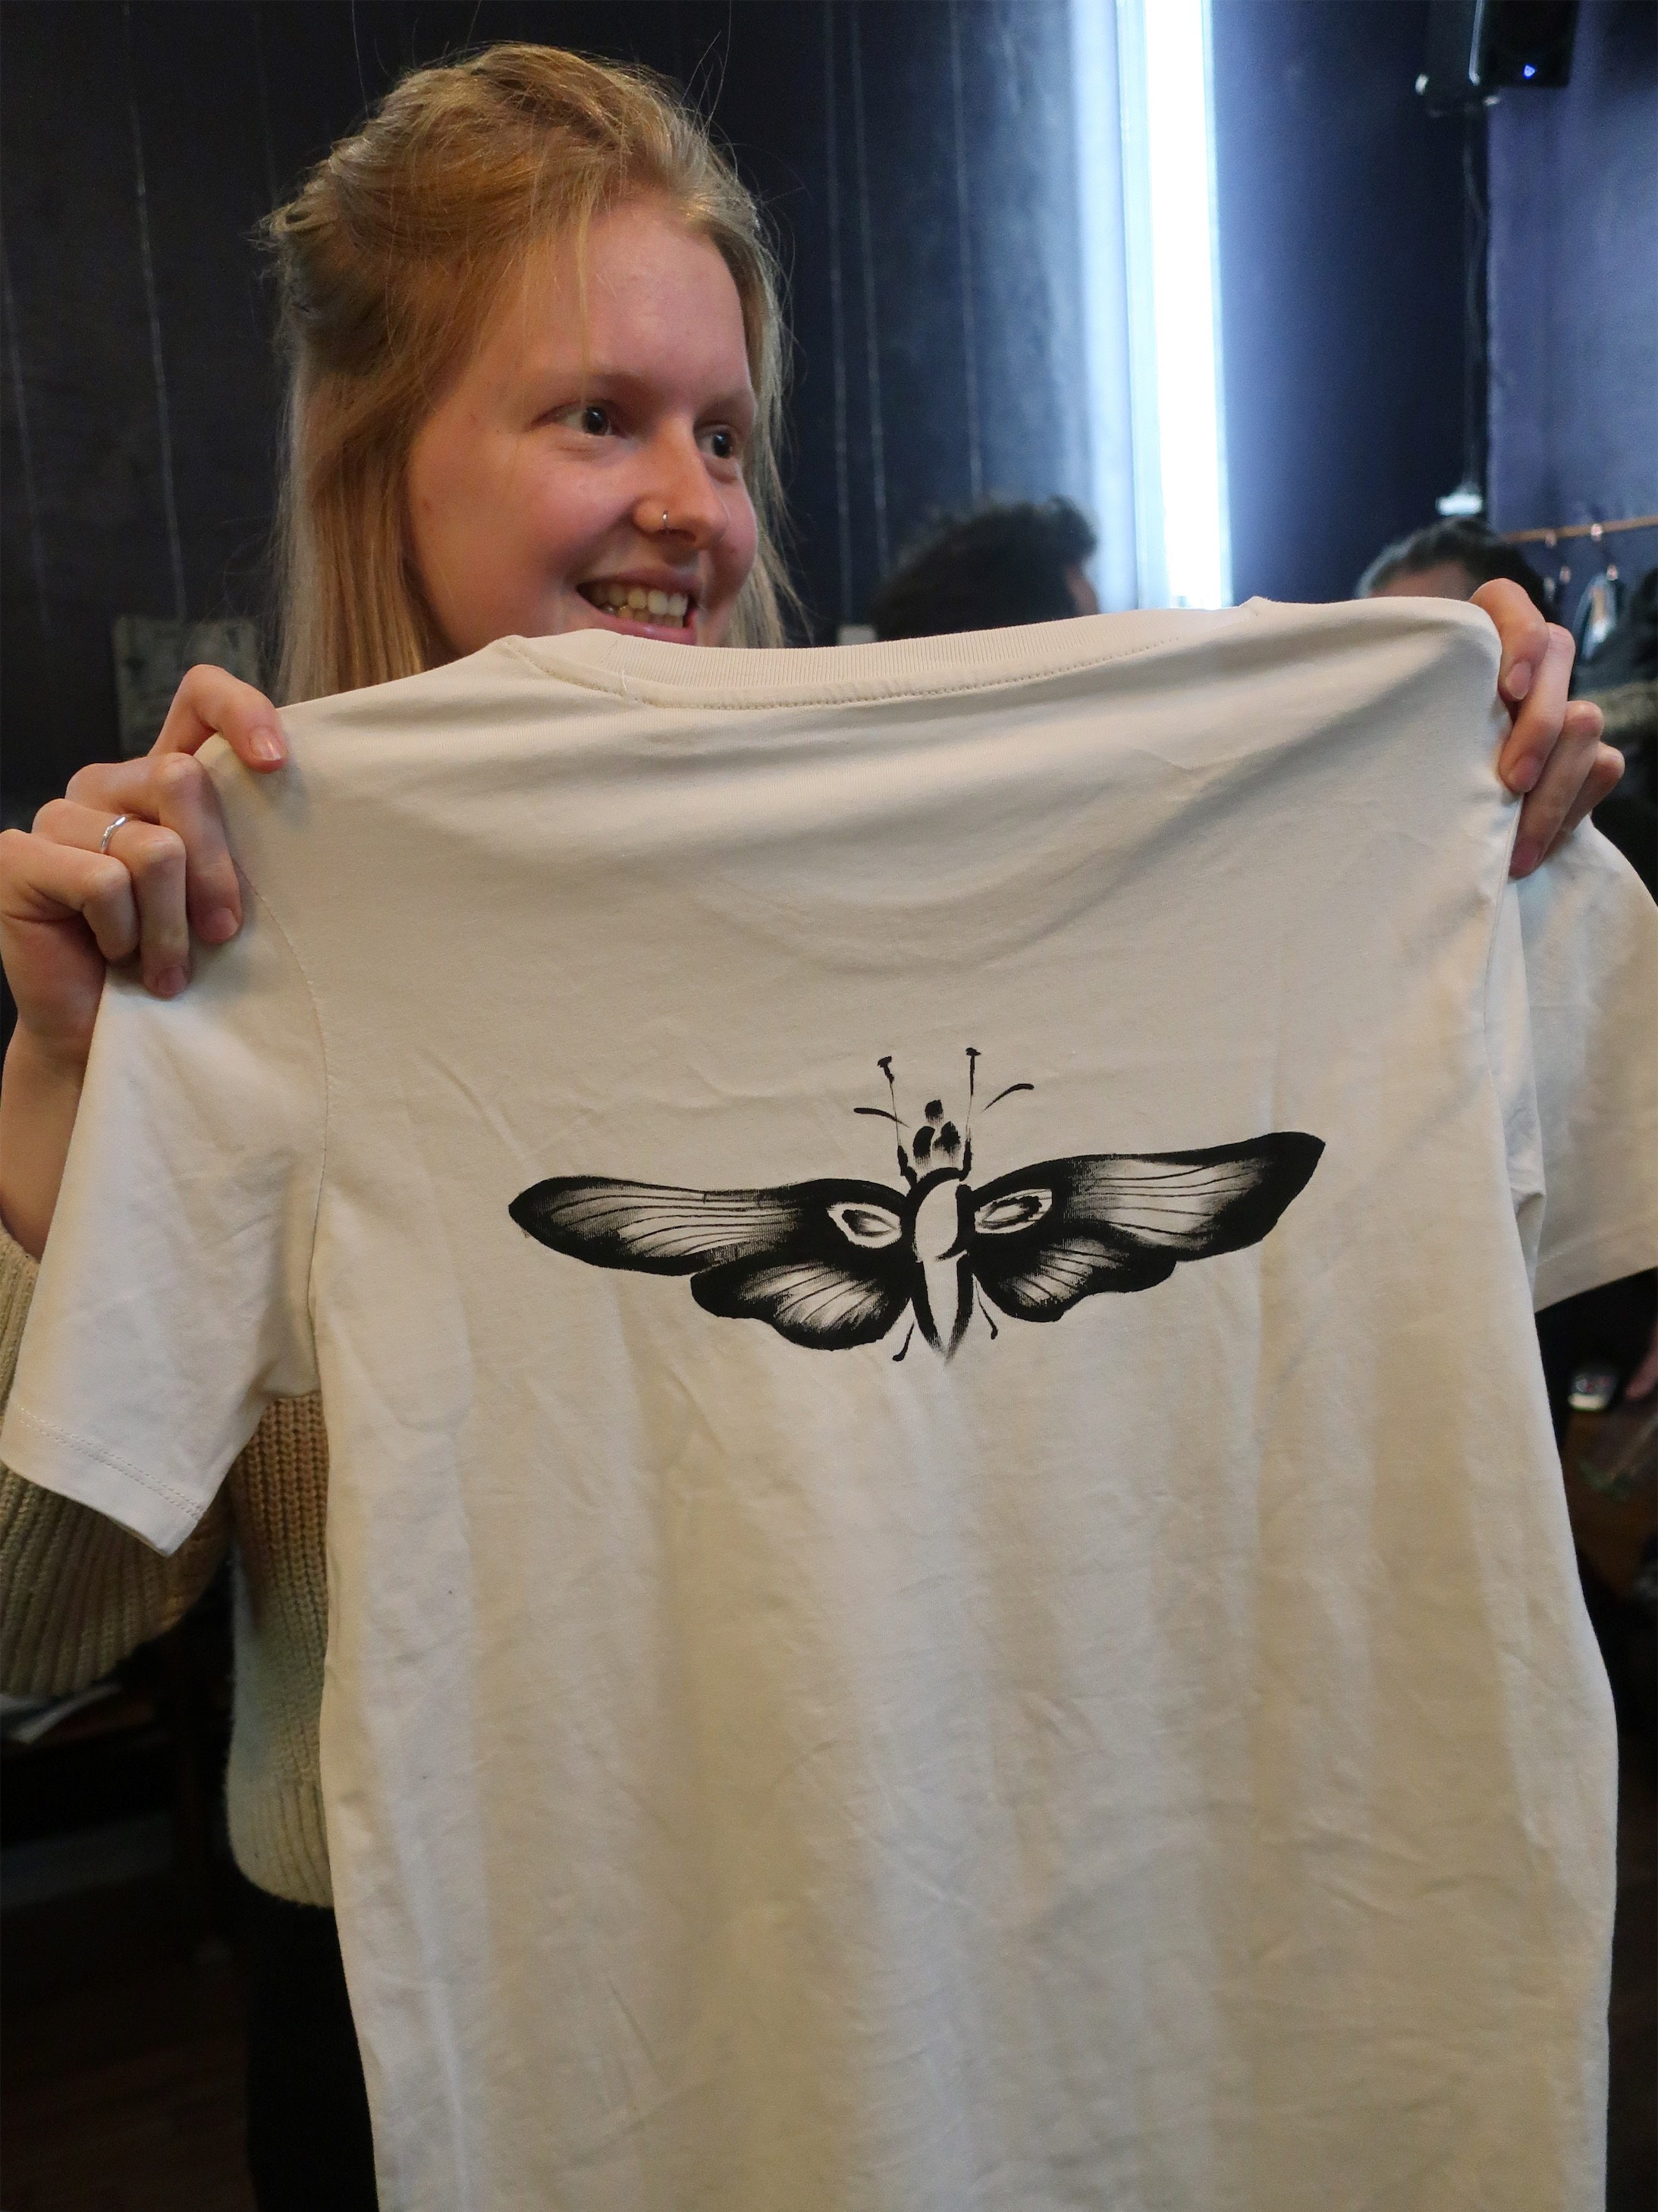 Handpainted moth tshirt by albareyk.jpeg